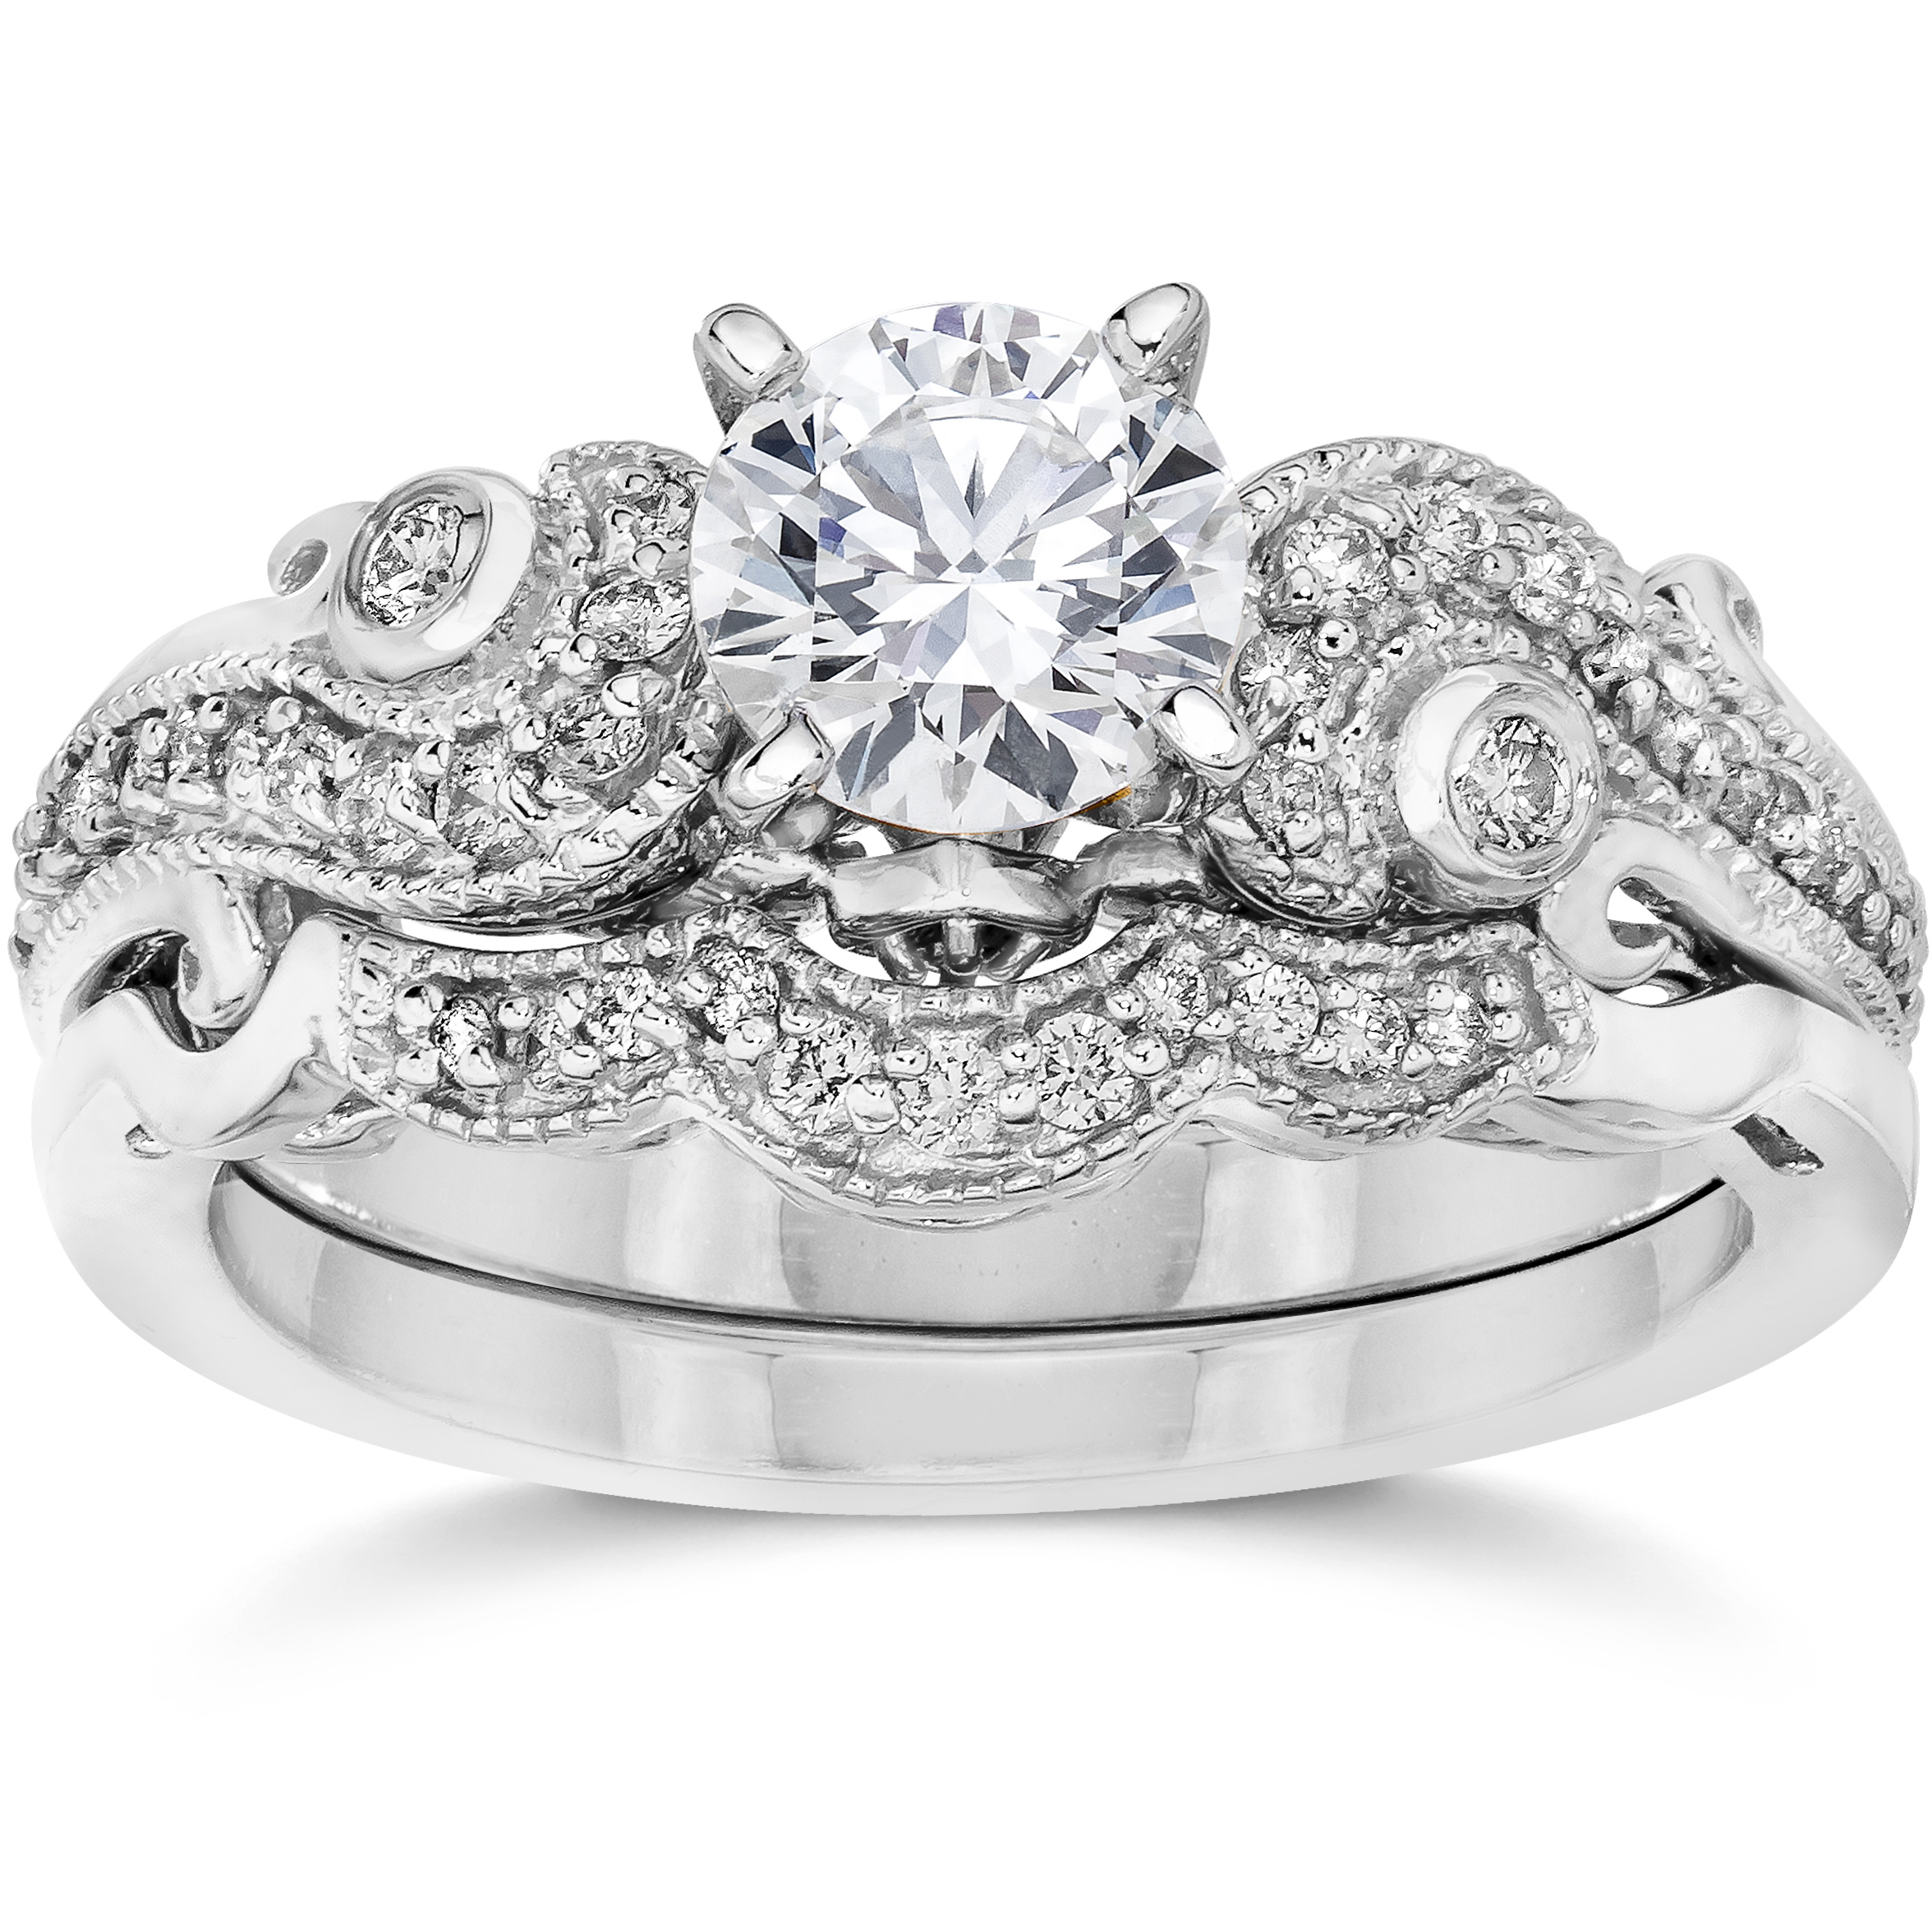 3 4ct Diamond Engagement Wedding Ring Matching Set 14K White Gold (J-K,I2-I3) by Pompeii3